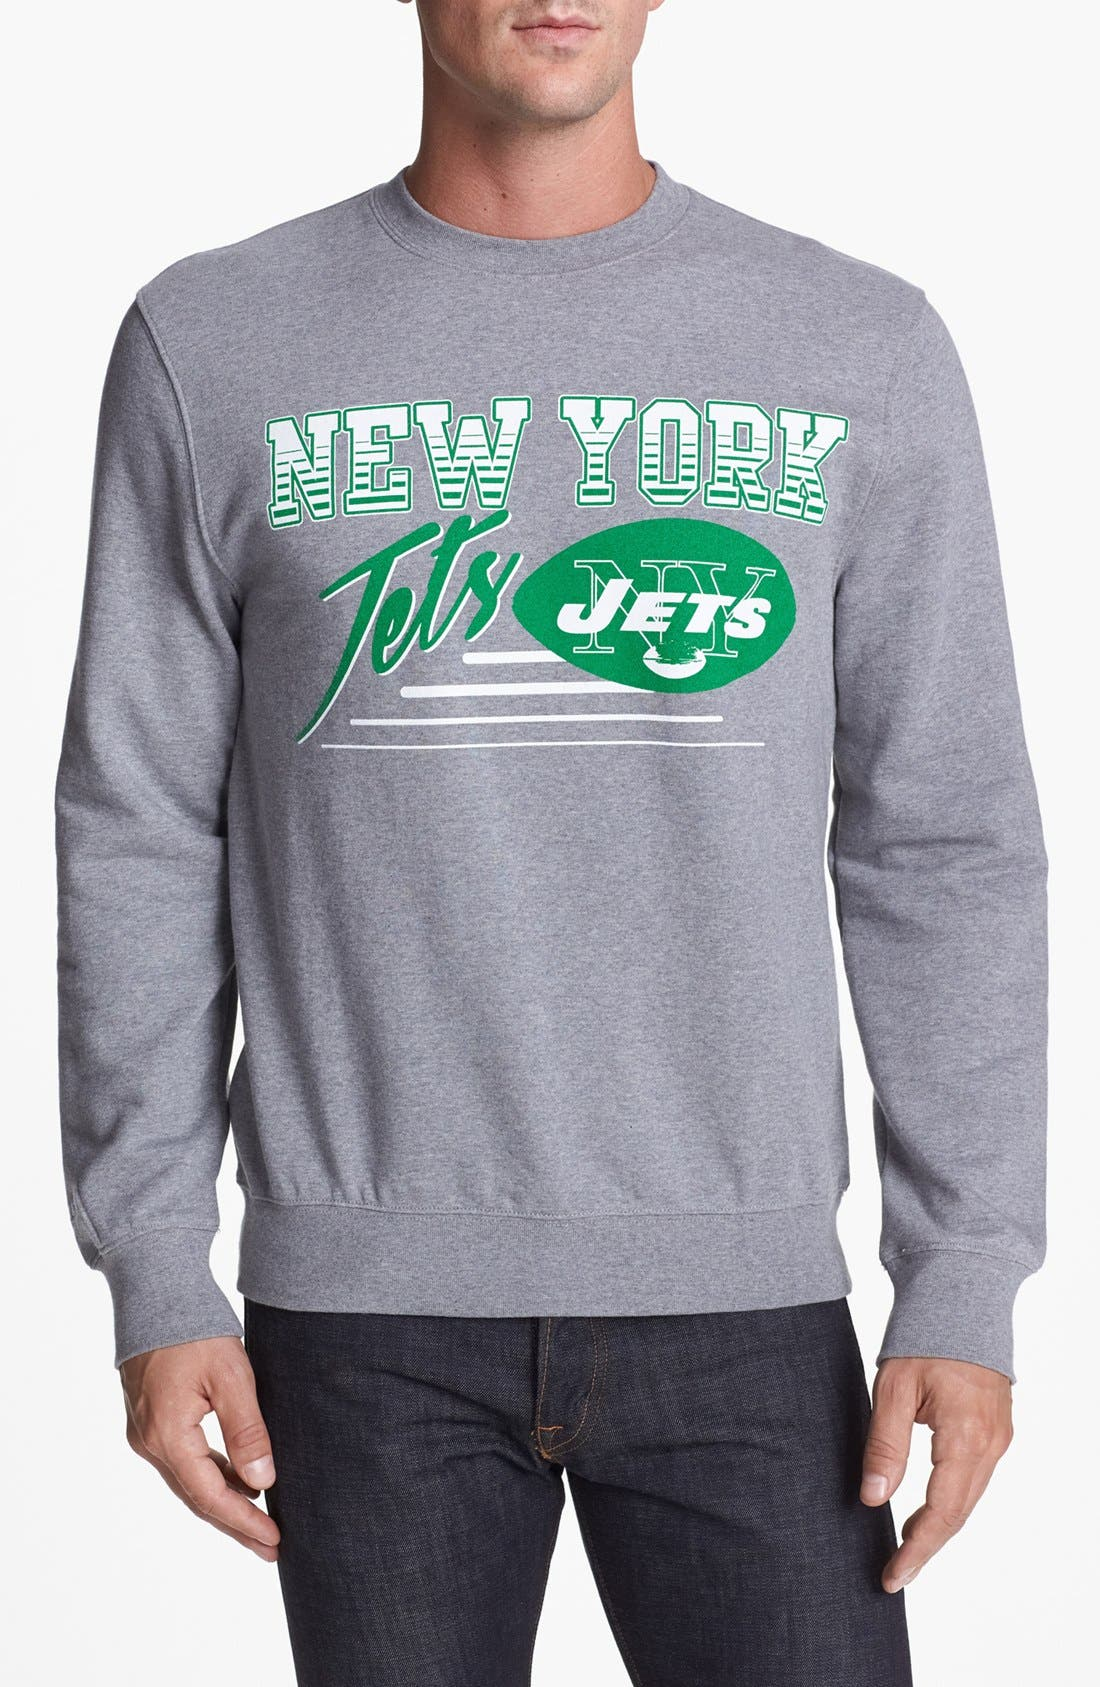 Alternate Image 1 Selected - Mitchell & Ness 'New York Jets' Sweatshirt